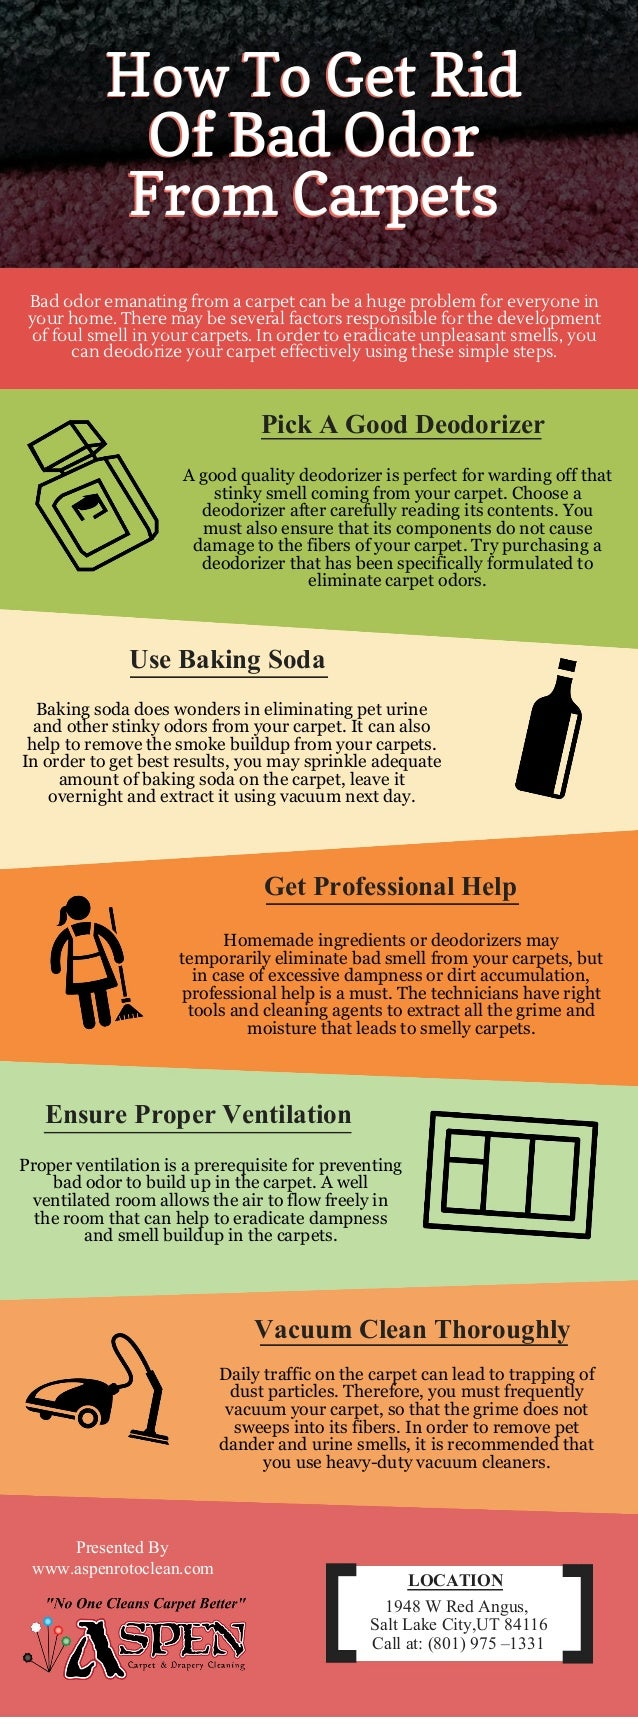 How To Get Rid Of Bad Odor From Carpets Bad Odor Emanating From A Carpet Can